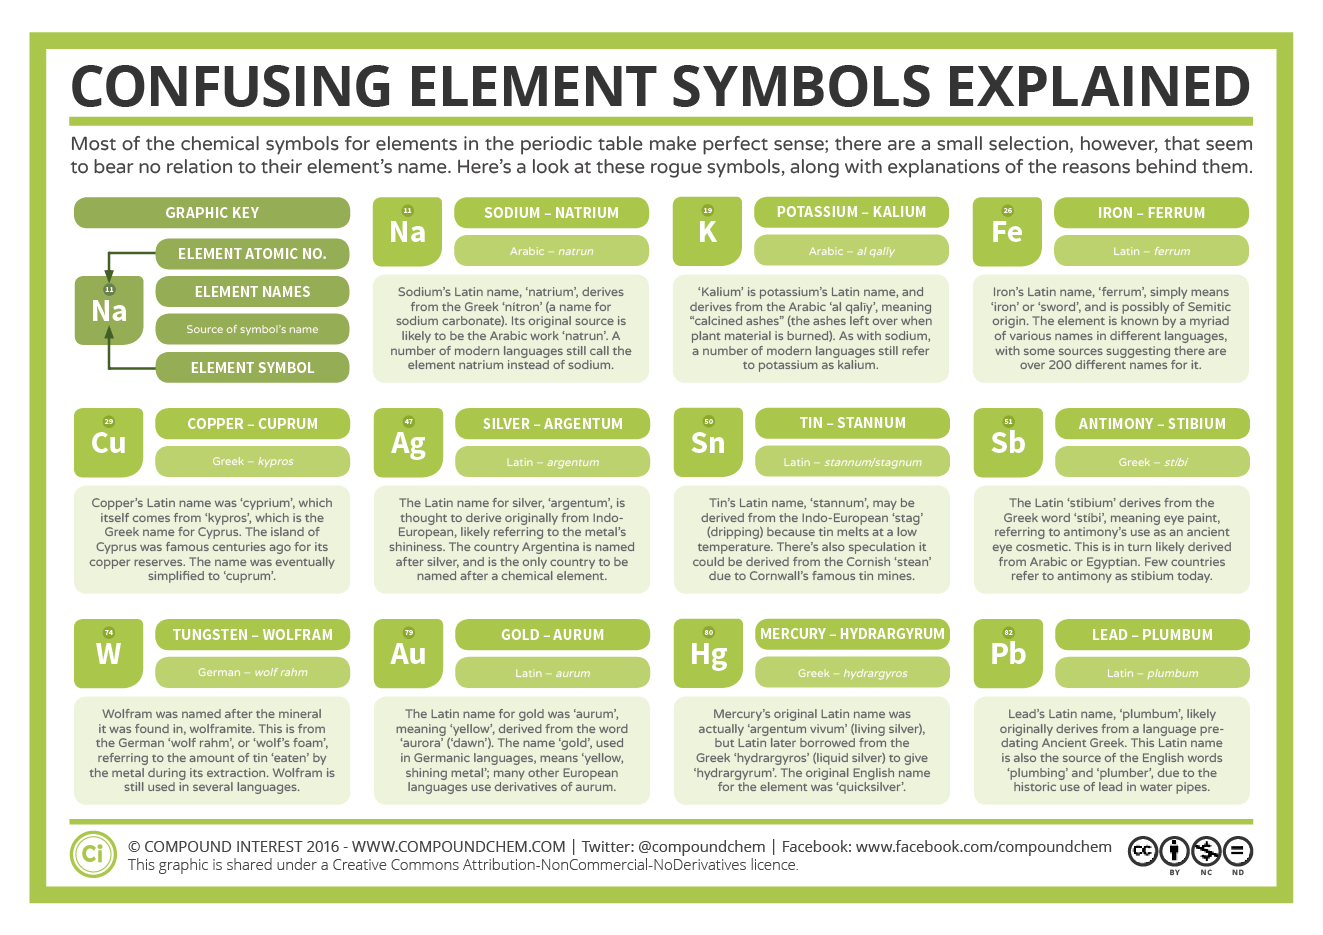 Compound interest element oddities 11 confusing chemical symbols 11 confusing chemical element symbols explained urtaz